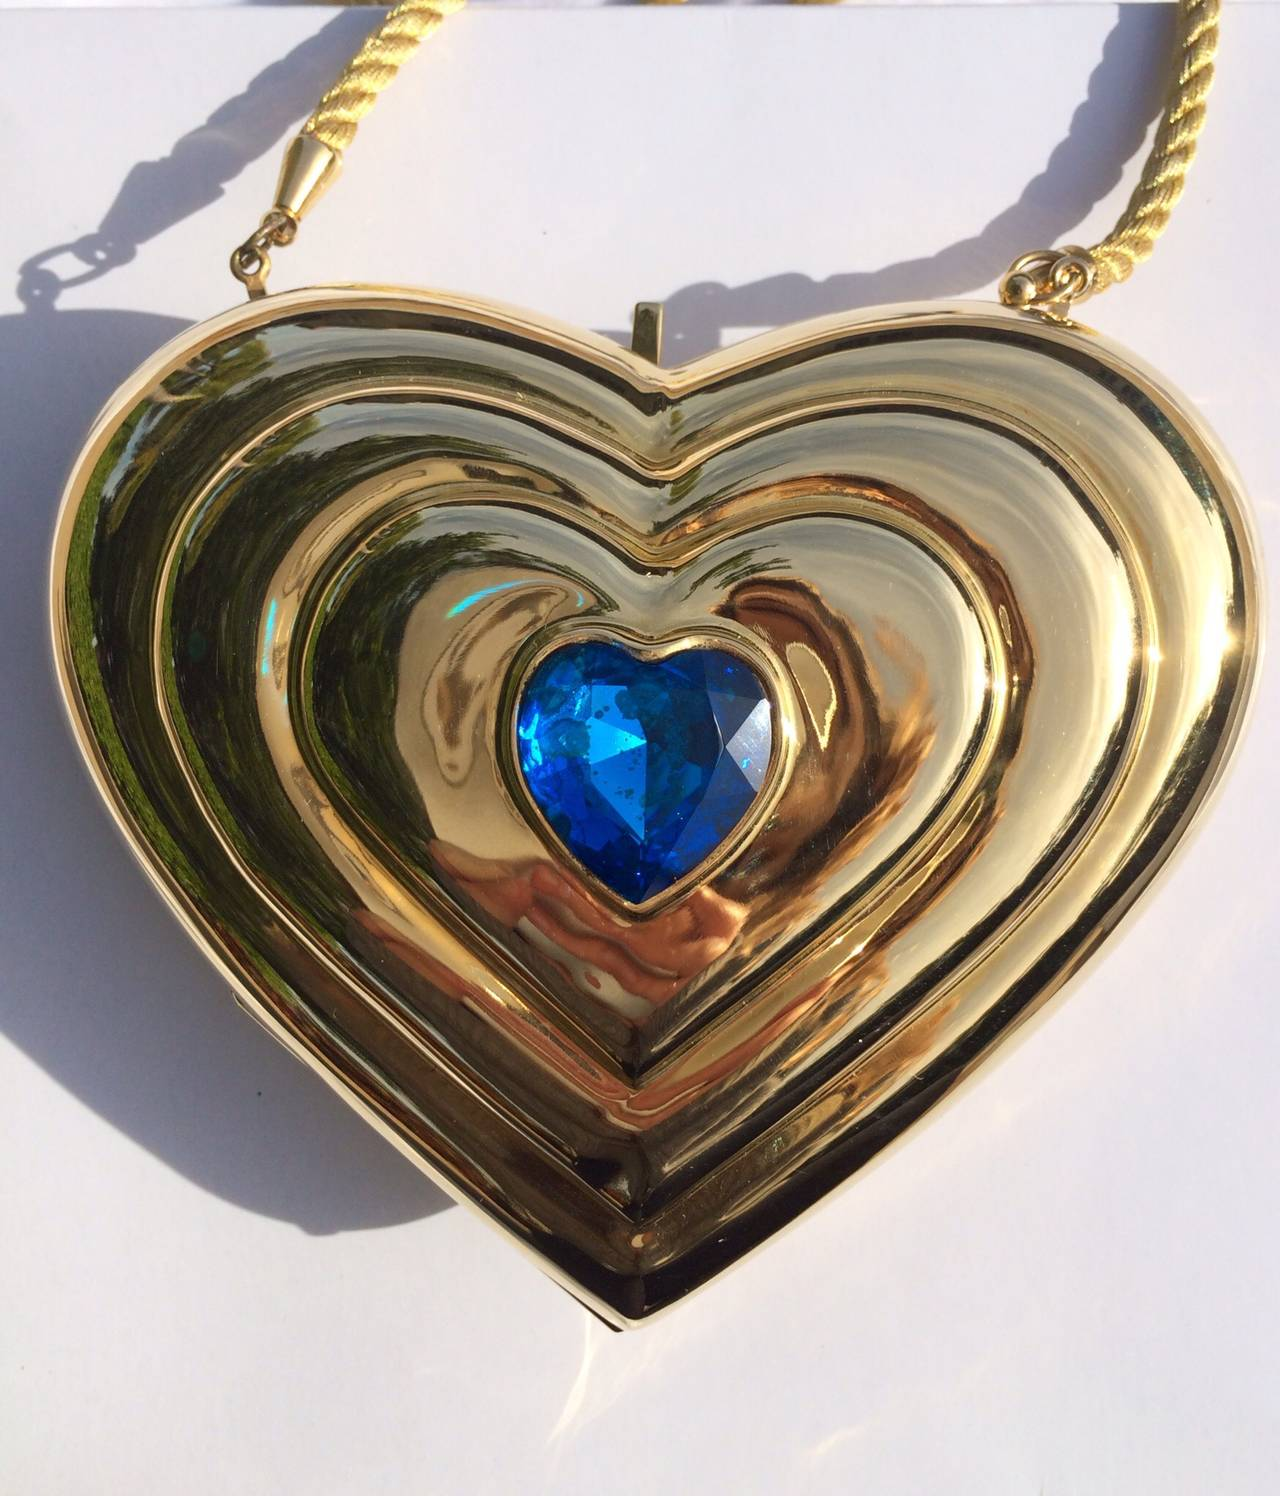 YSL / Yves Saint Laurent Heart Shaped Gold & Sapphire Crystal Minaudiere Bag 5